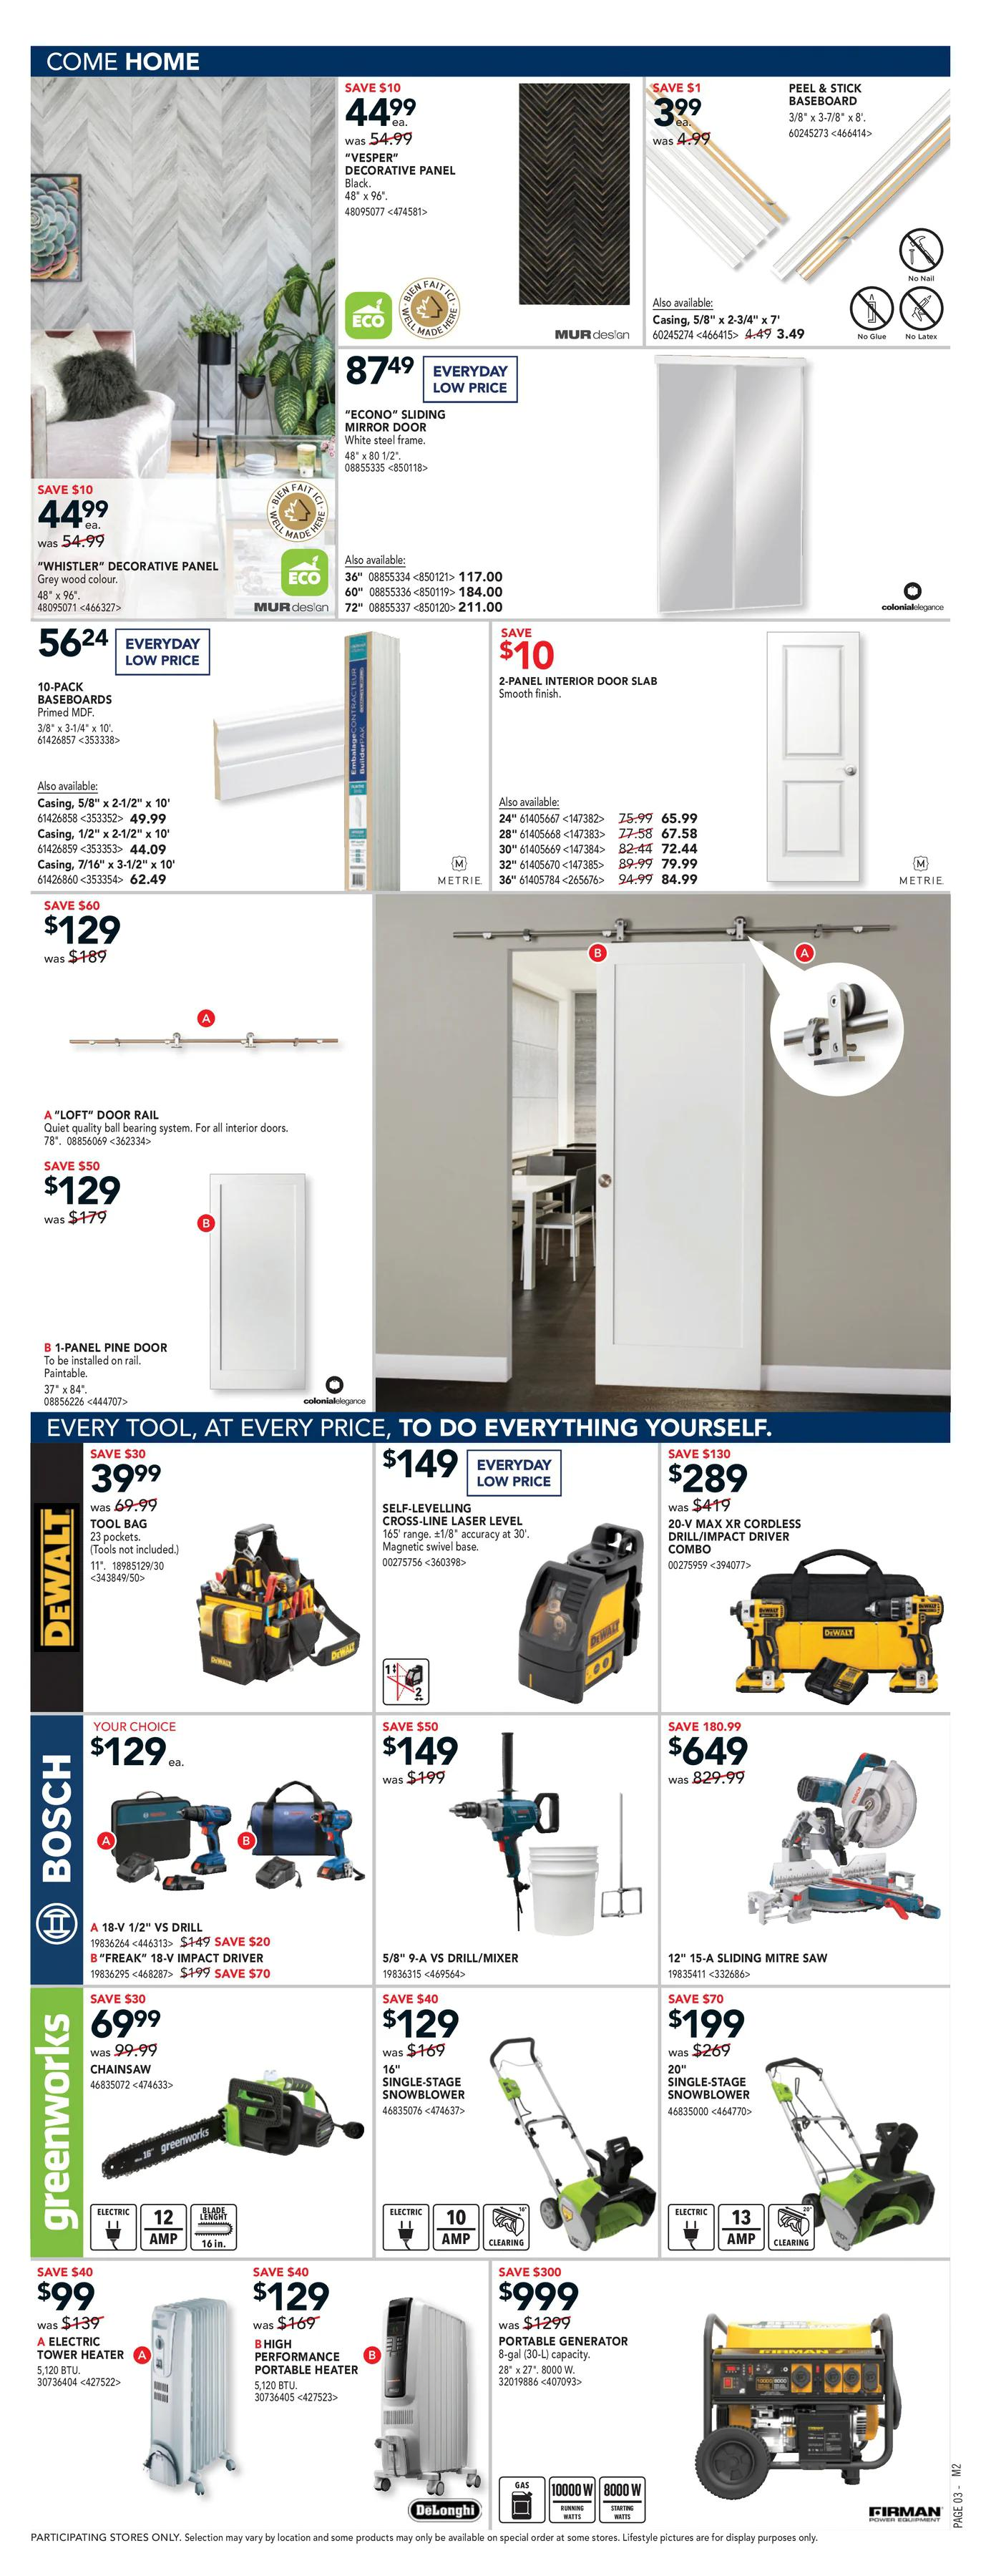 Rona - Weekly Flyer Specials - Page 3